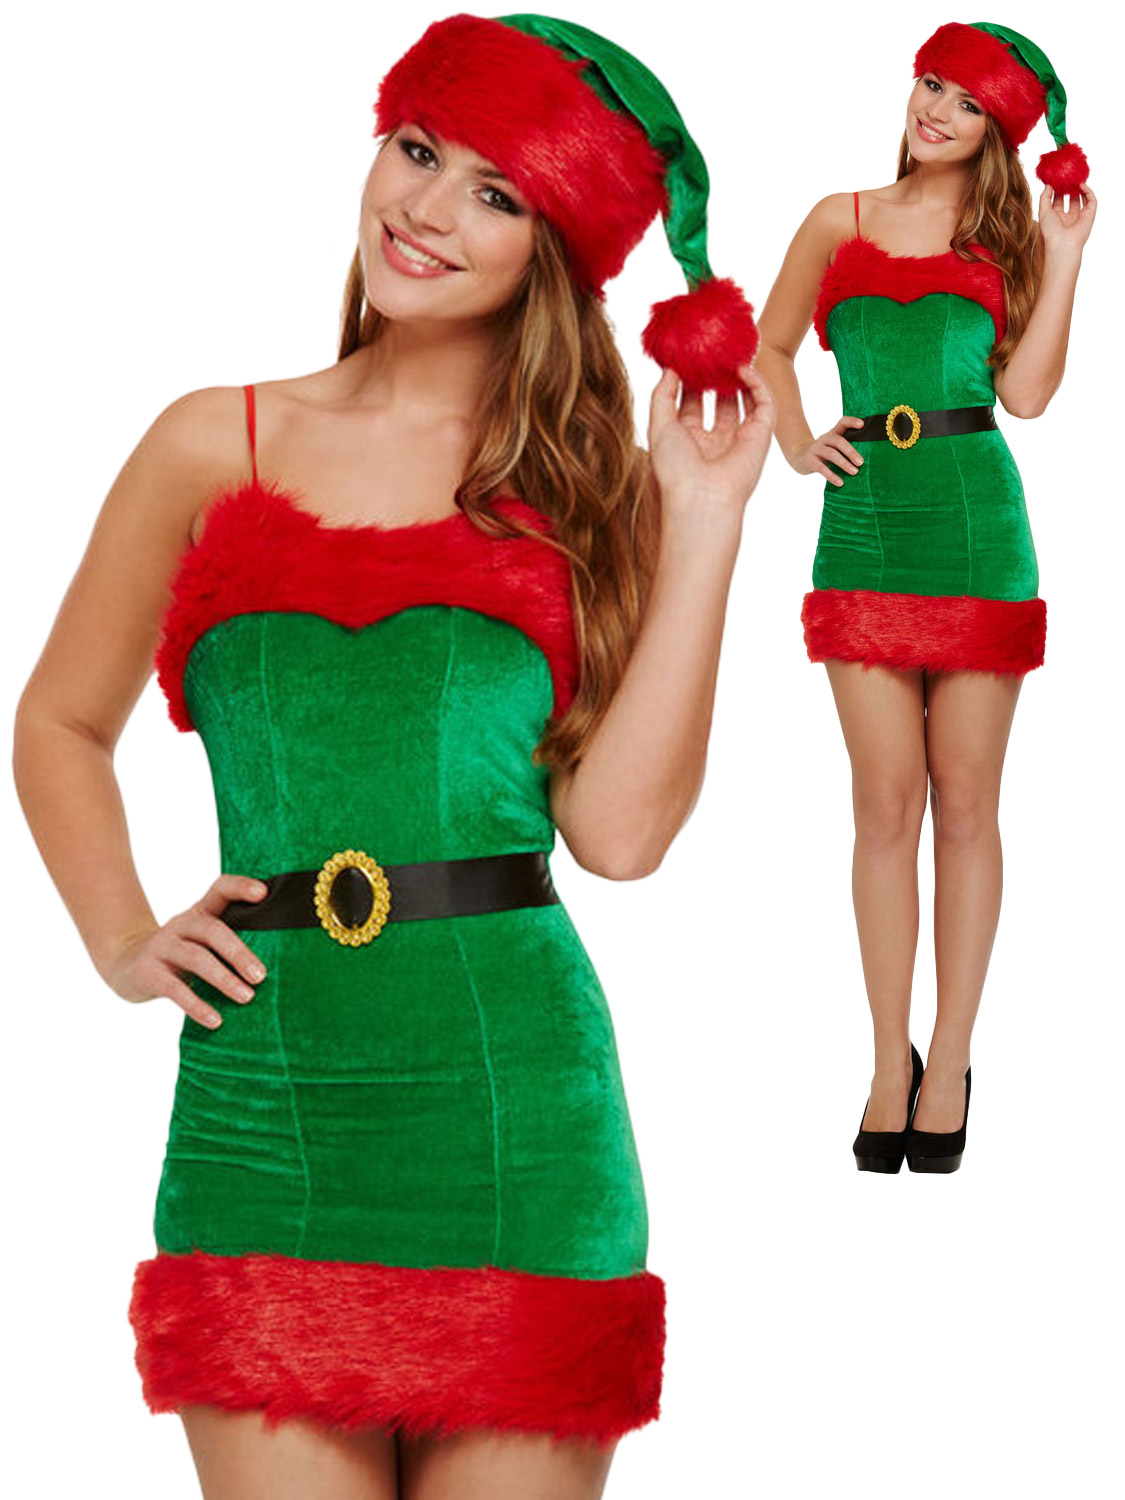 Ladies sexy elf costume adults christmas fancy dress womens santas transform yourself into a santas helper with this ladies sexy elf costume ideal if you are dressing up for an xmas party solutioingenieria Images